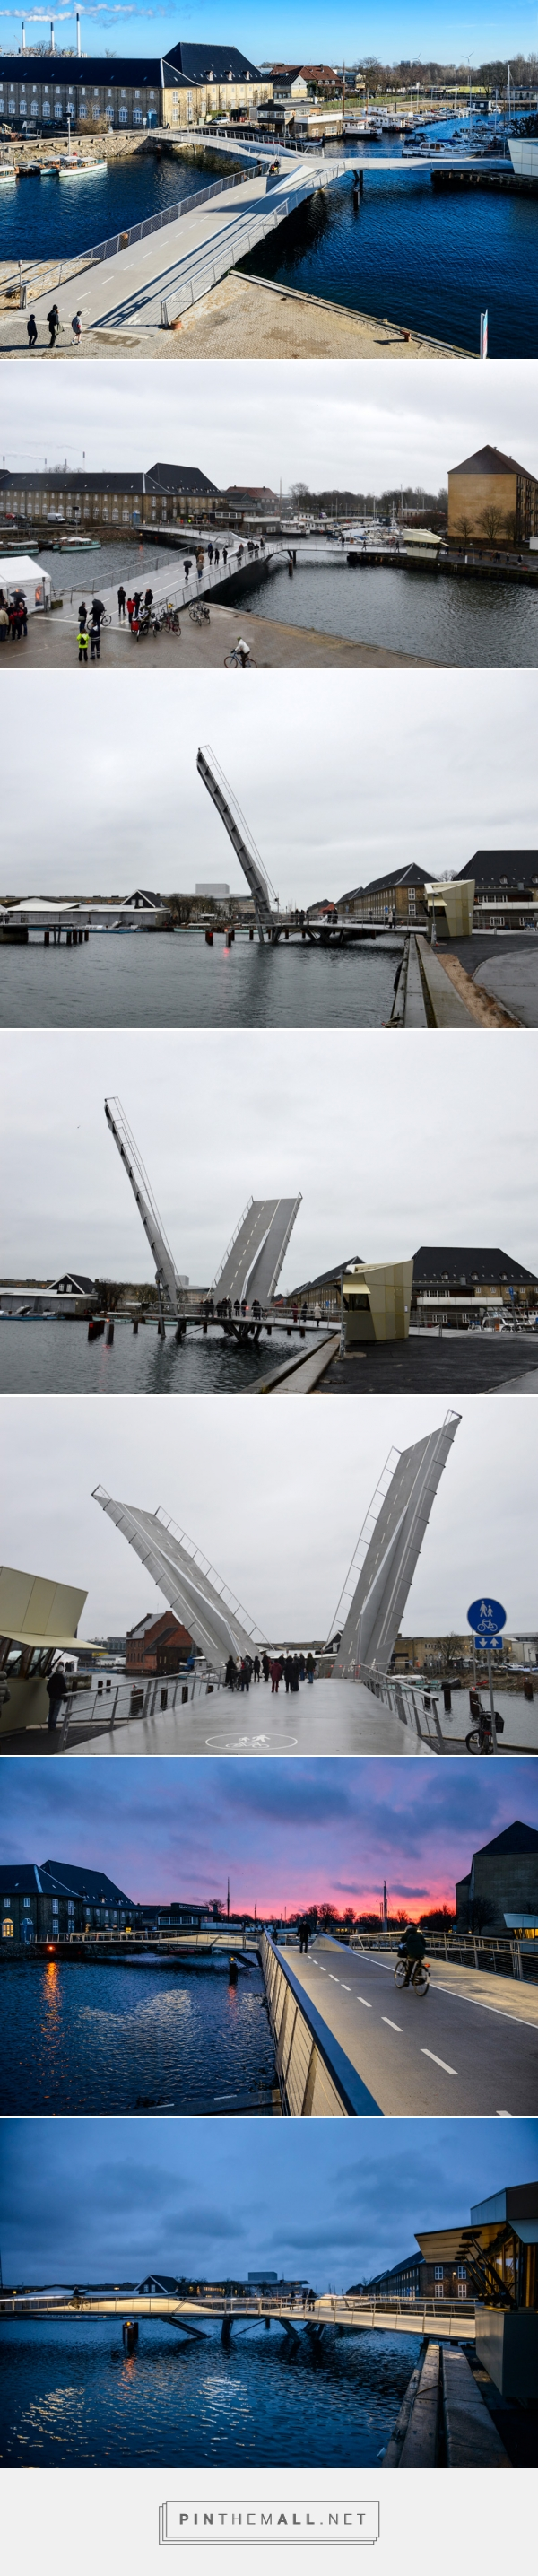 butterfly bridge in copenhagen by dietmar feichtinger architectes - created via http://pinthemall.net